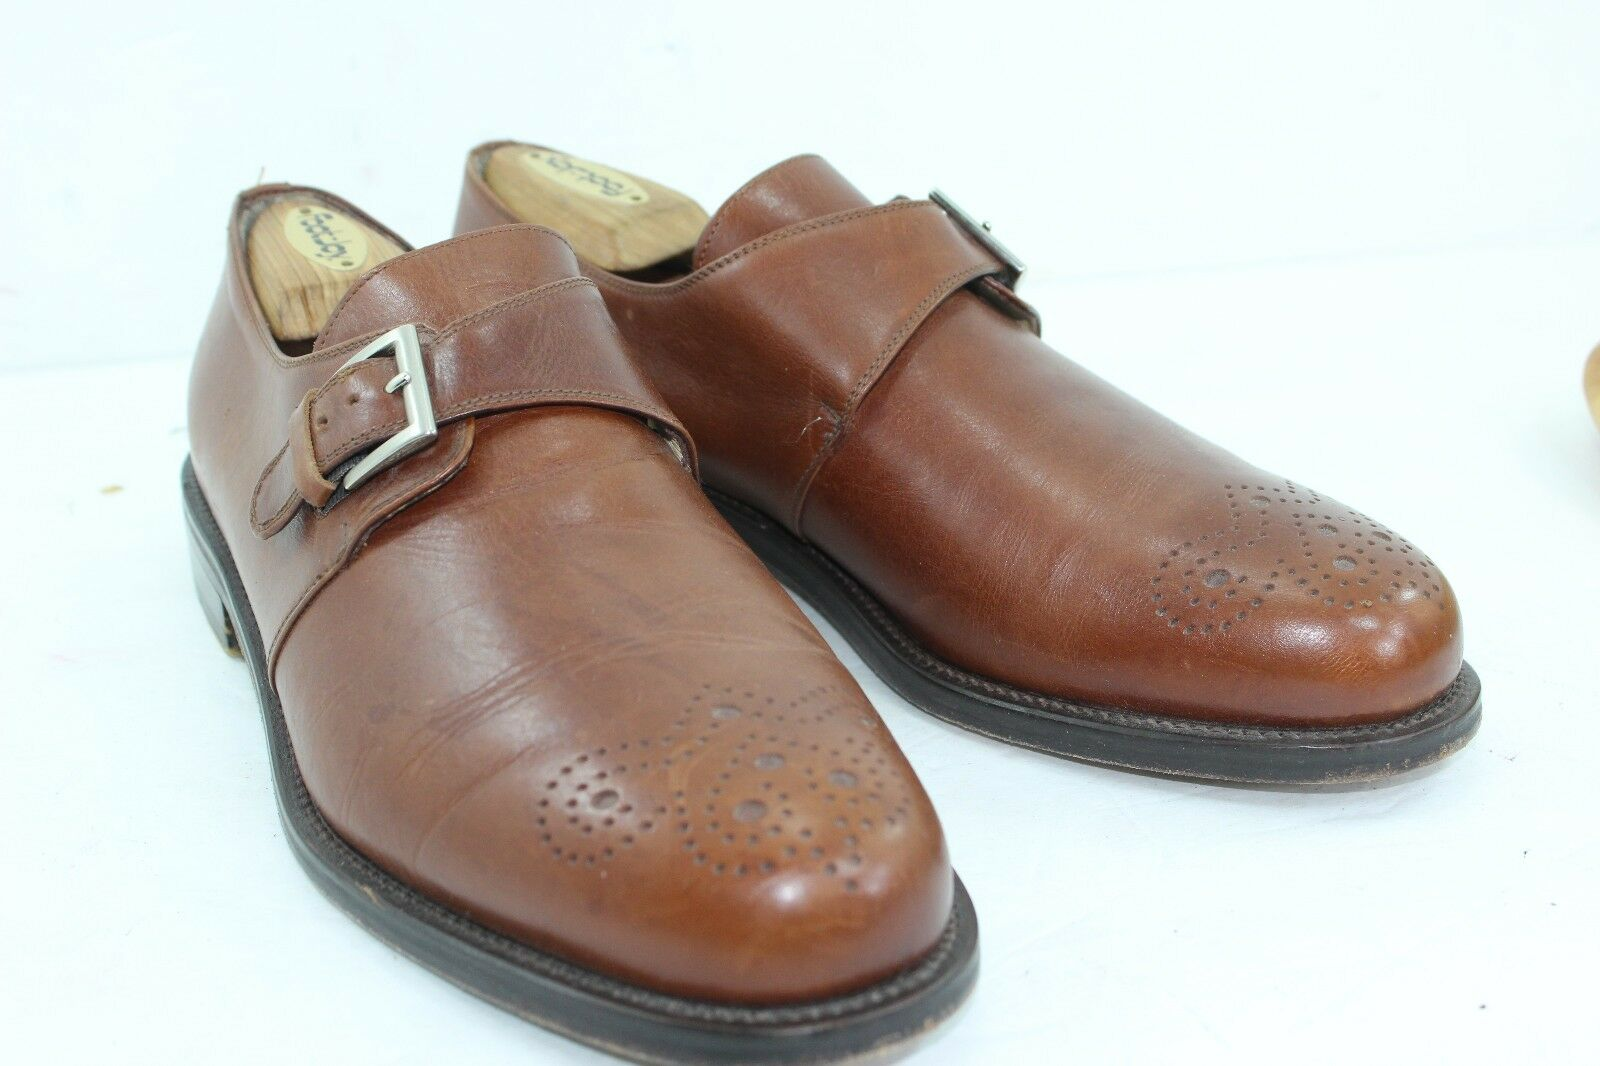 JOSEPH ABBOUD MONK SIZE 11 M BROWNS IN PRISTINE CONDITION MADE IN ITALY